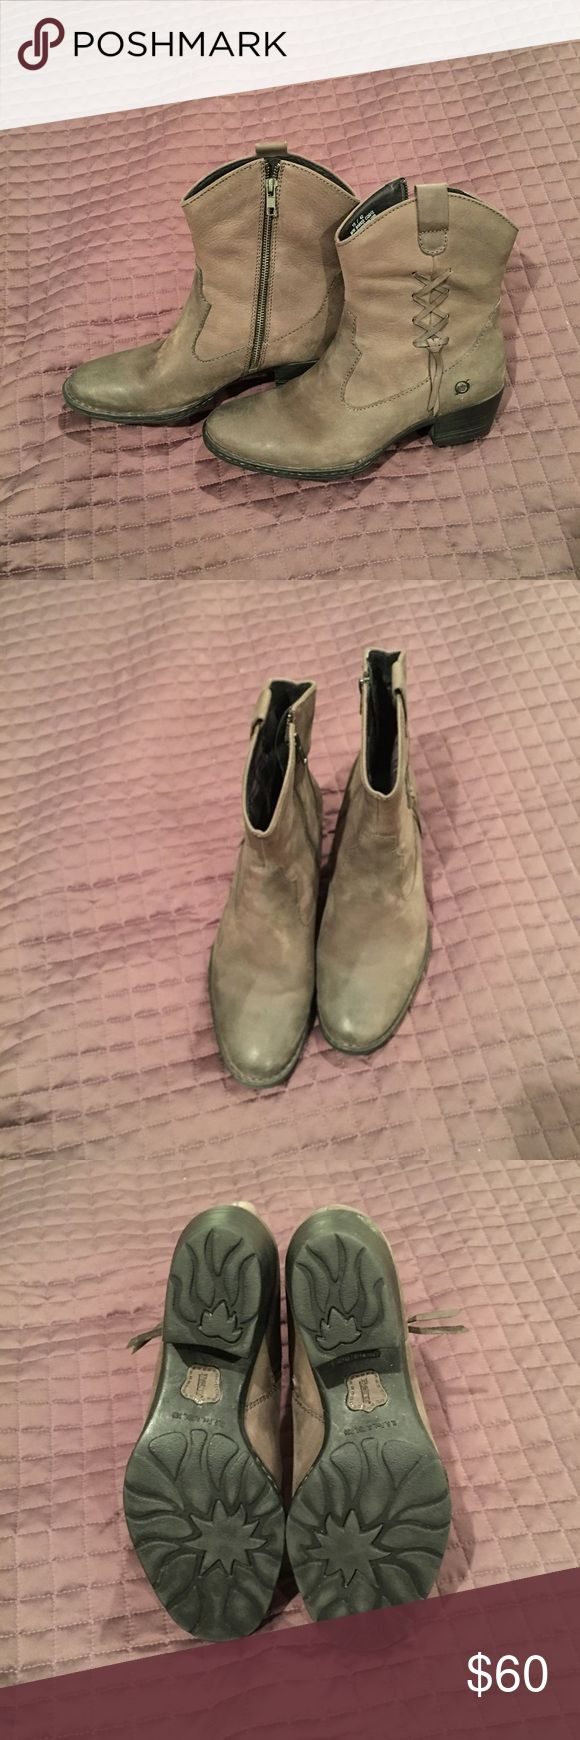 Women's grey boots above ankle, size 10 by Born Women's grey boots, above the ankle by Born, size 10.  Leather upper with 2 inch heel and very comfortable. Gently worn and they look great with boot cut, skinny jeans and dresses/skirts! Born Shoes Heeled Boots